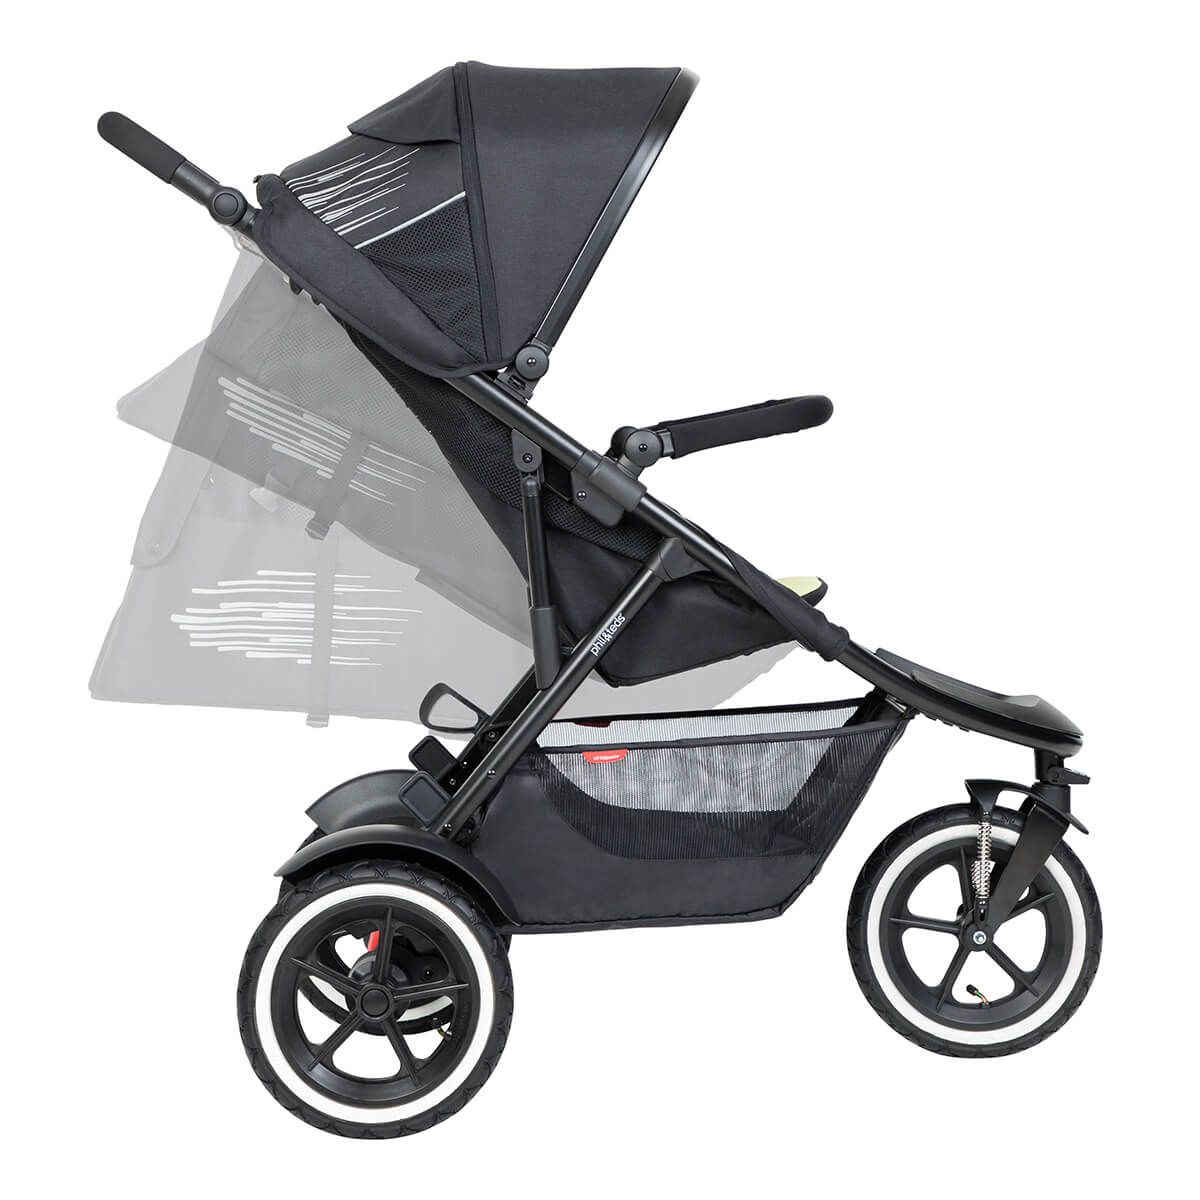 https://cdn.accentuate.io/4509866590305/19793939267754/philteds-sport-buggy-can-recline-in-multiple-angles-including-full-recline-for-newborn-baby-v1626485324135.jpg?1200x1200